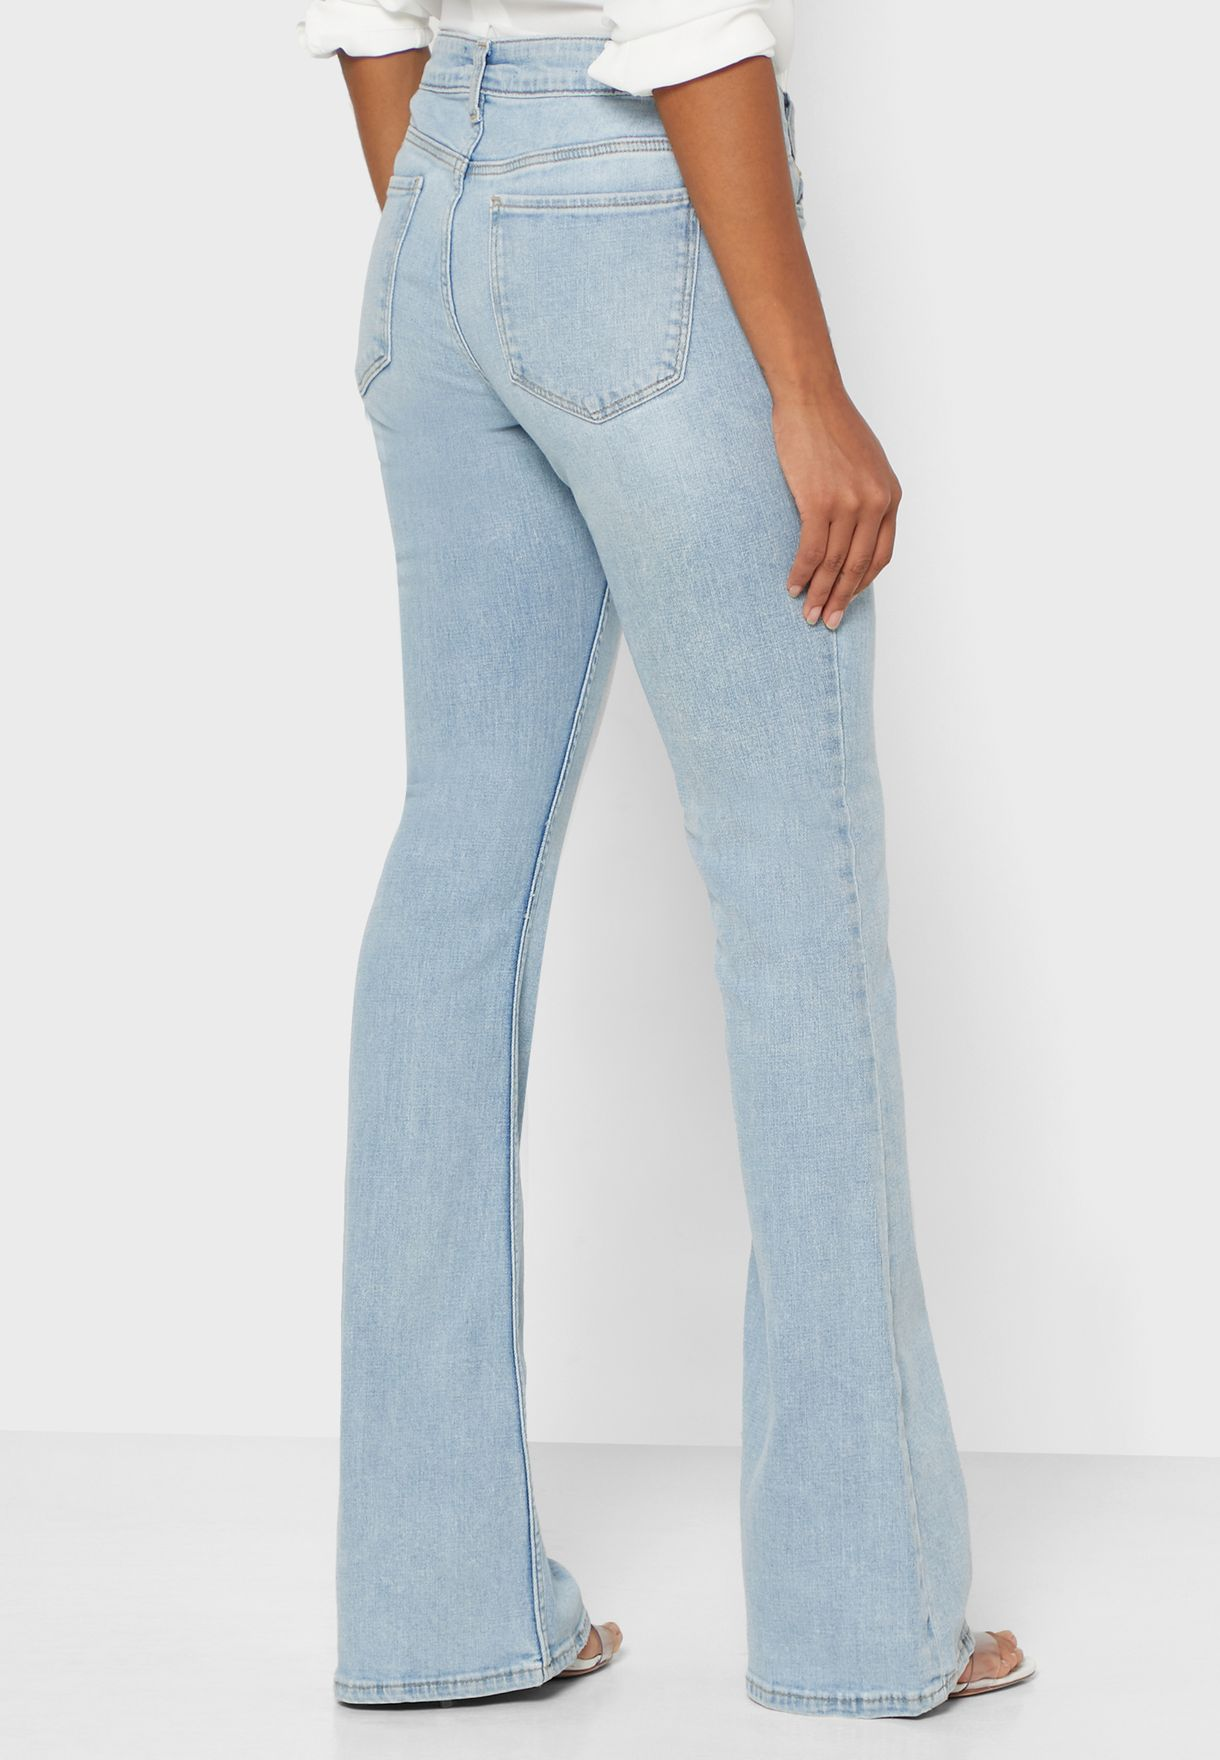 Buy Mango Blue Flared Jeans For Women, Uae 18840at91twp